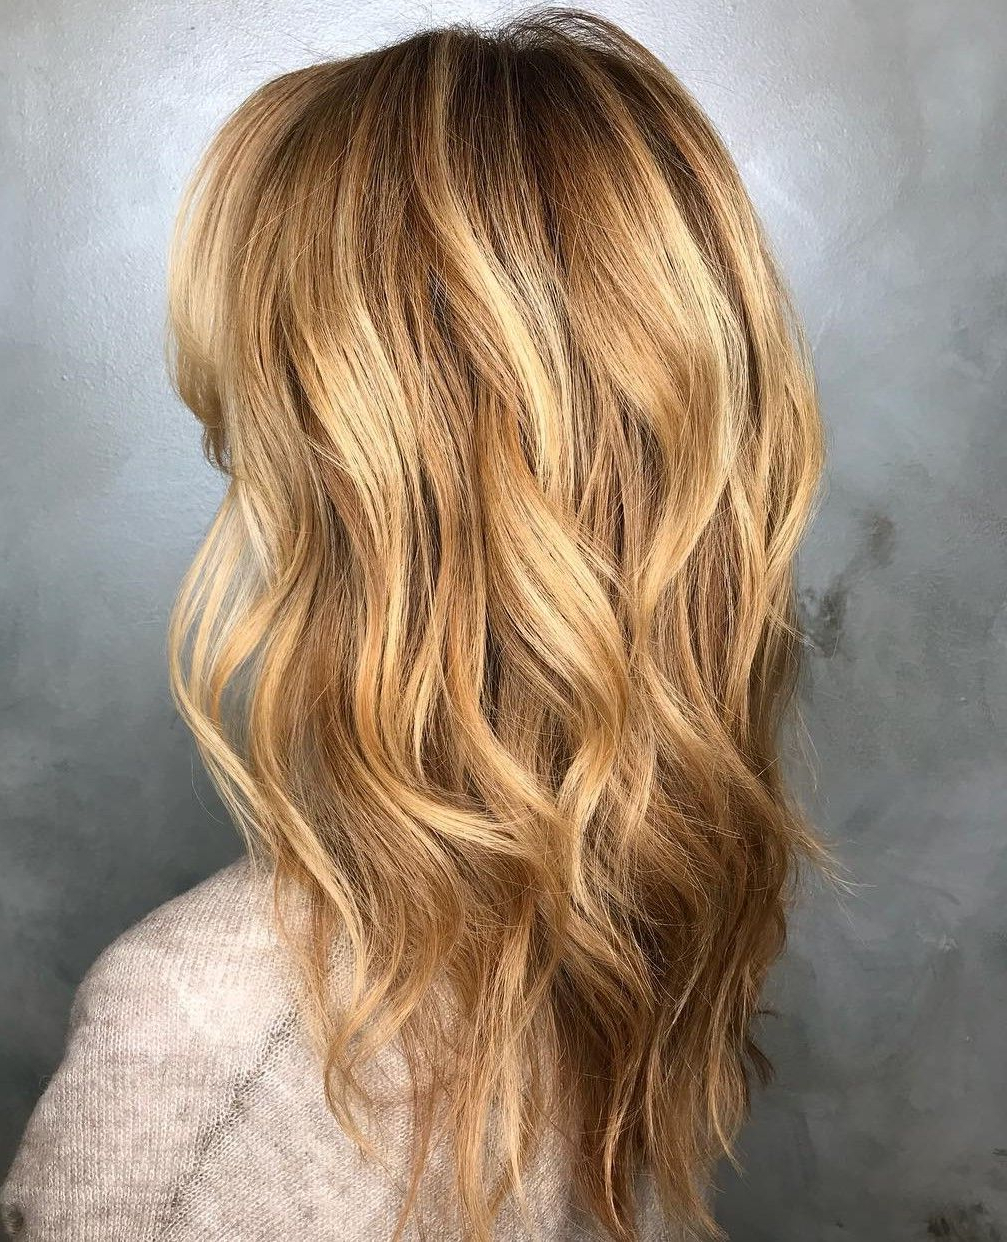 Most Recently Released Longer Tousled Caramel Blonde Shag Haircuts For Pin On Hair Ideas (View 13 of 20)